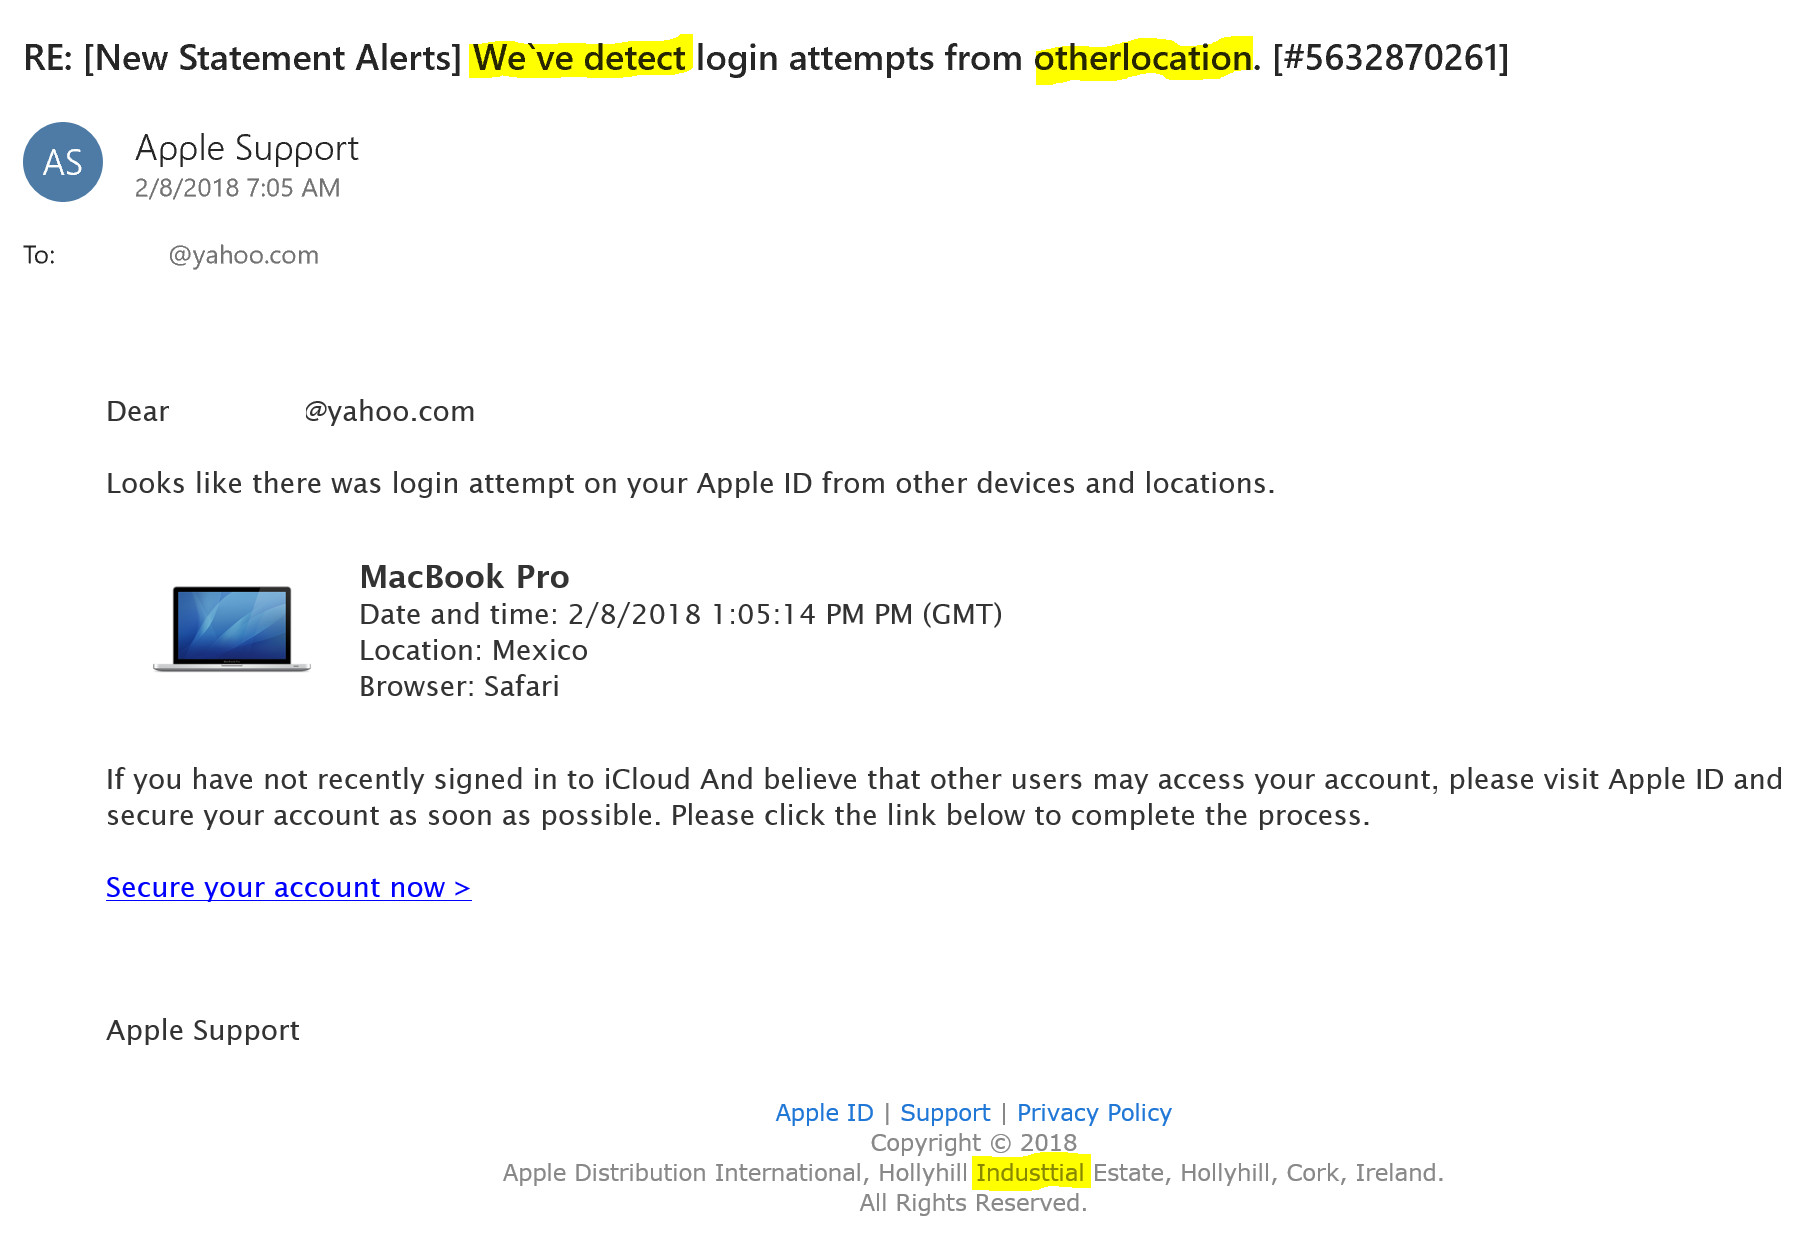 apple email scam example 2